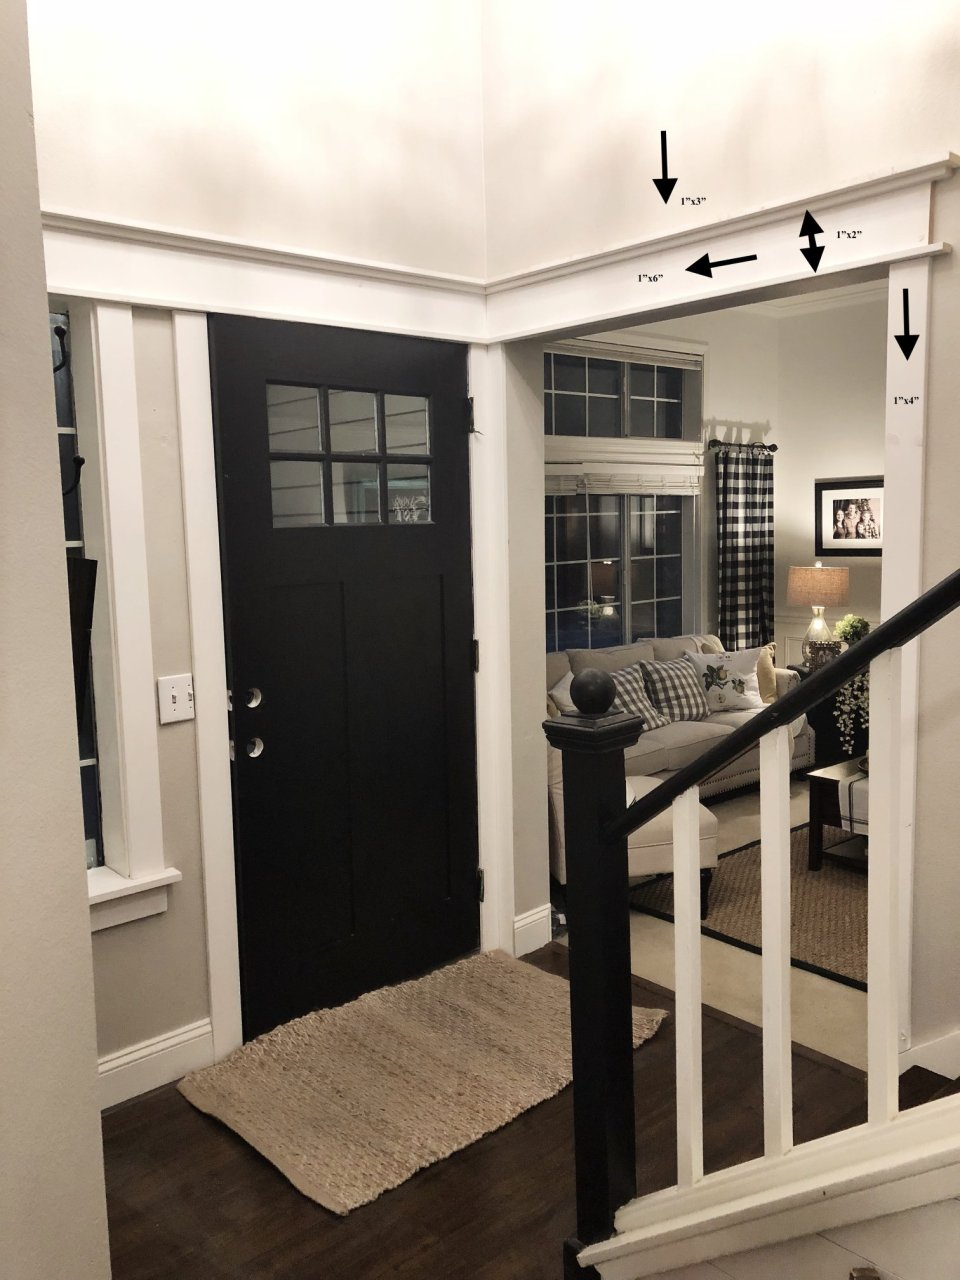 MY ONE ROOM CHALLENGE-ENTRY WAY-WEEK 1